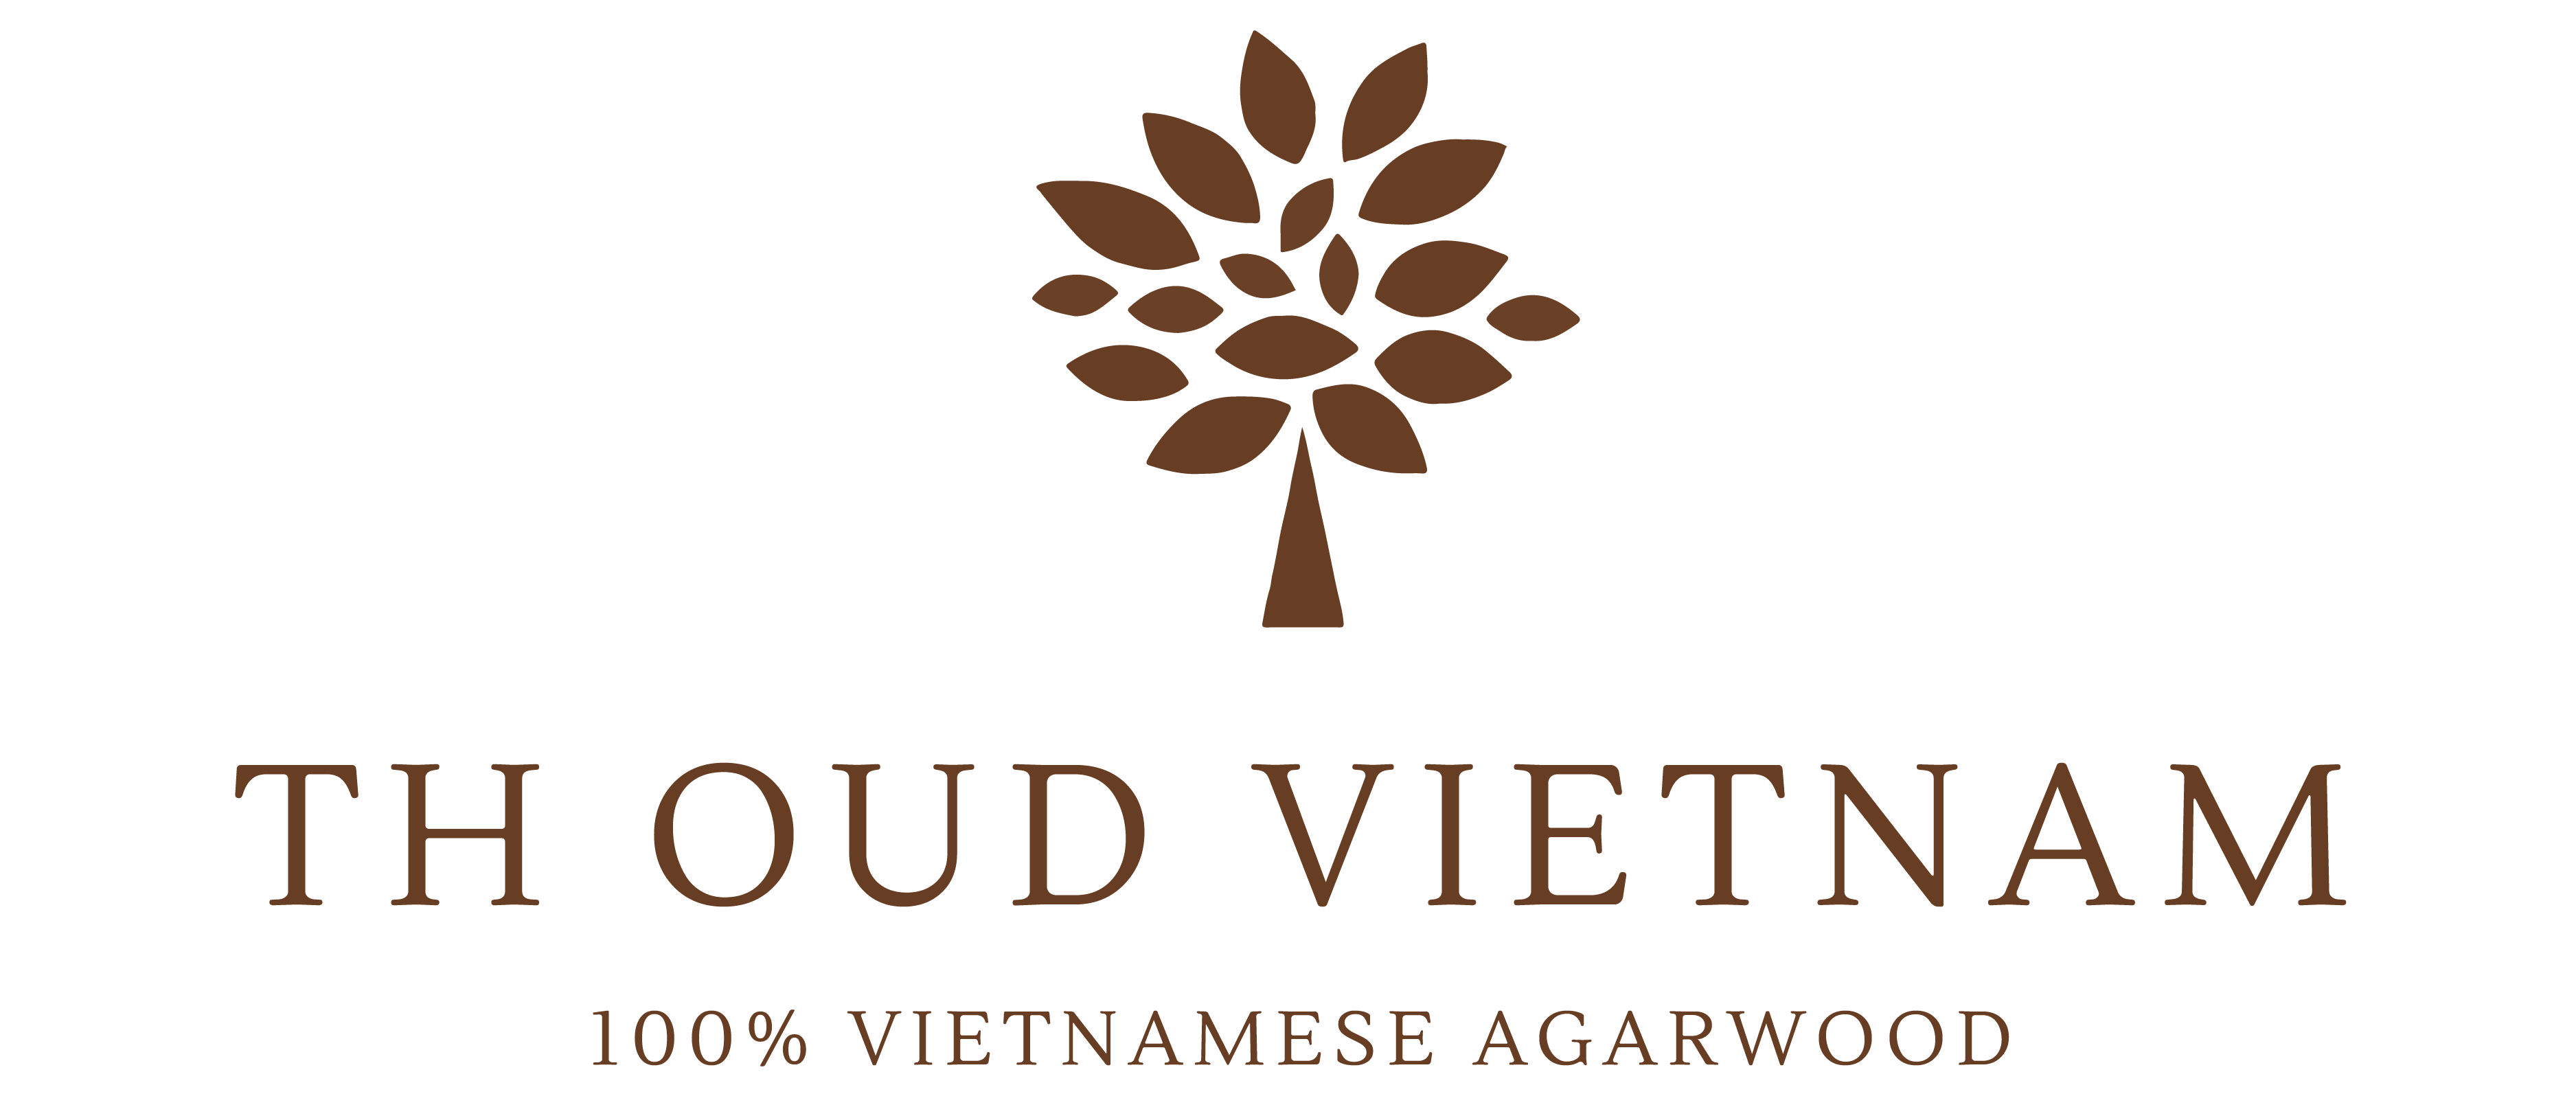 TH Oud Vietnam – The Leading Agarwood Vietnam Supplier, Wholesale & Retail